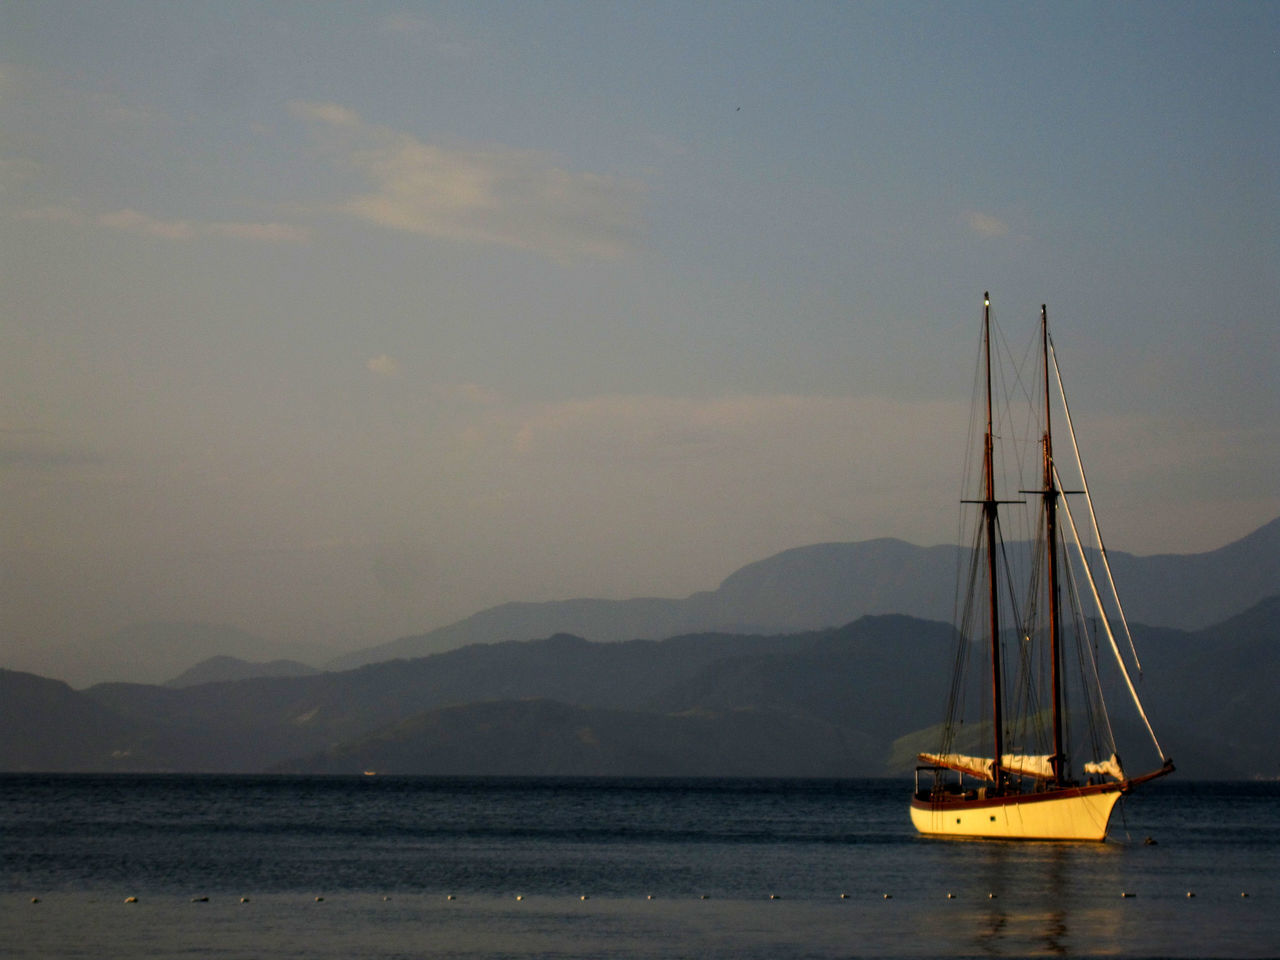 nautical vessel, sea, water, sky, mast, nature, scenics, sailboat, beauty in nature, transportation, tranquility, no people, outdoors, mode of transport, tranquil scene, sailing, mountain, moored, day, sailing ship